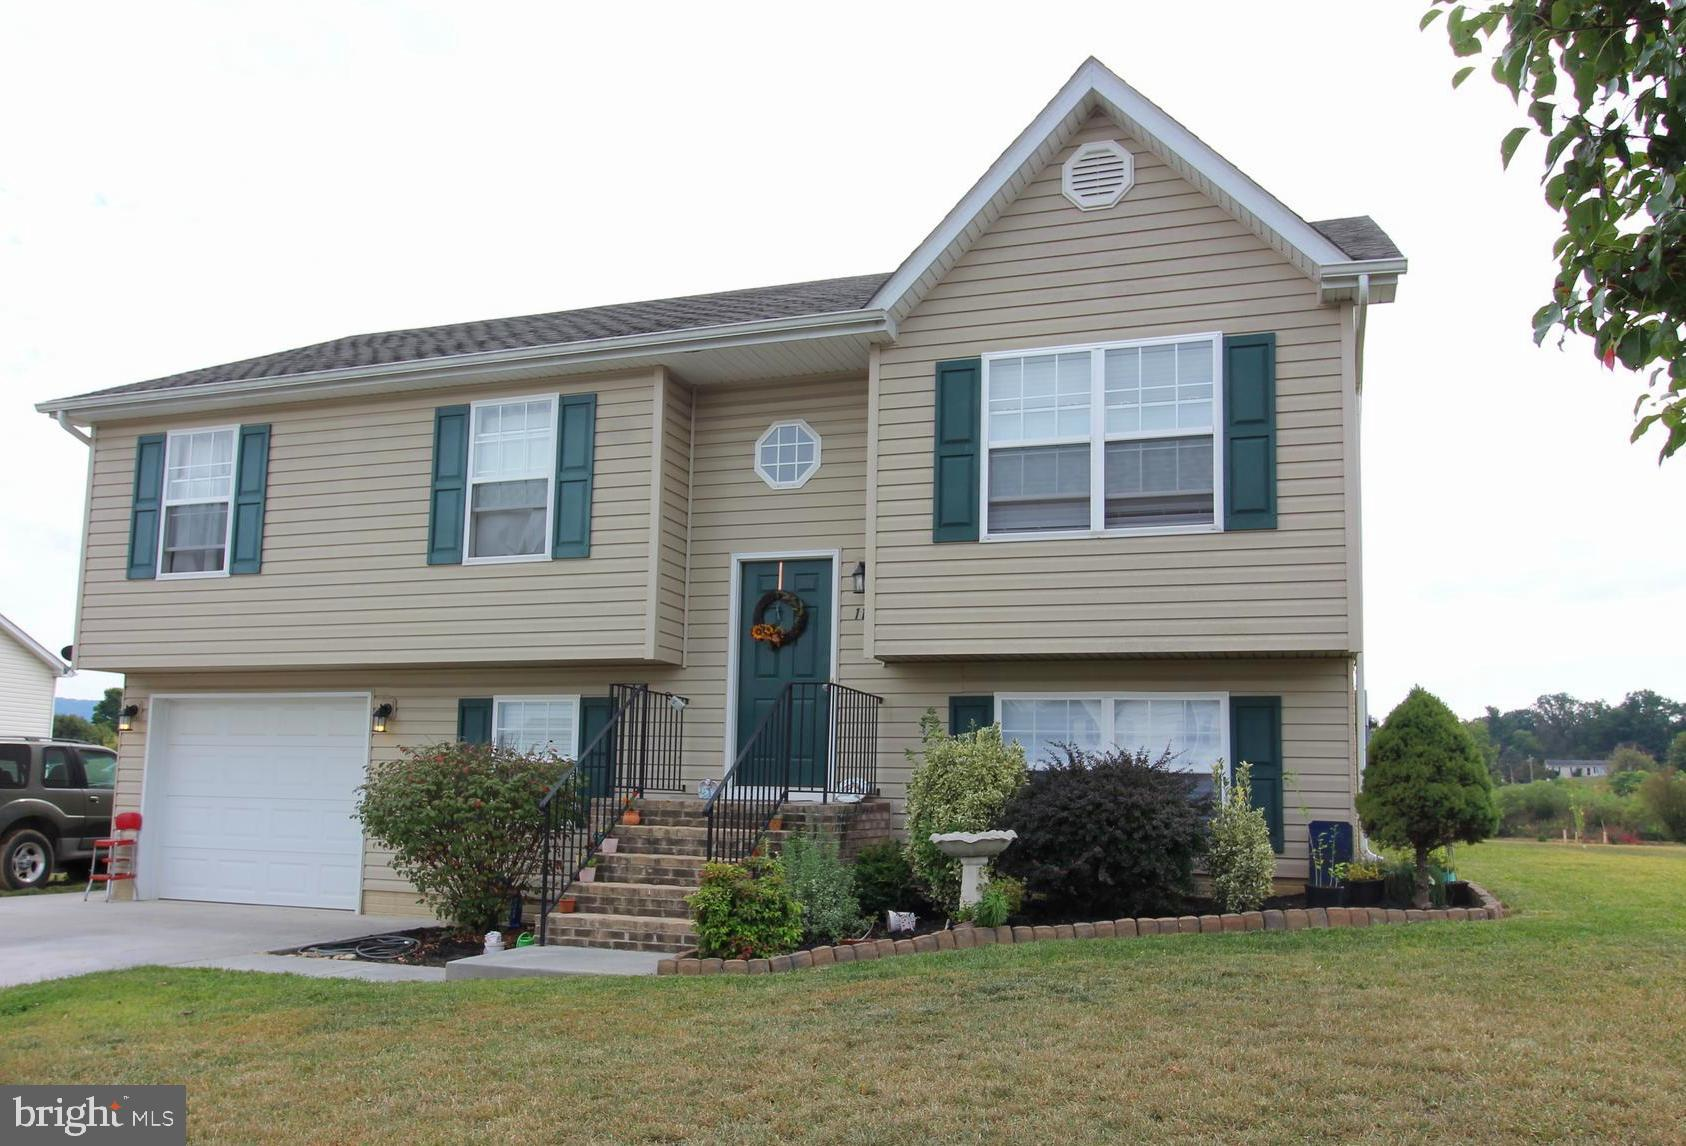 118 SILVER COURT, MAURERTOWN, VA 22644